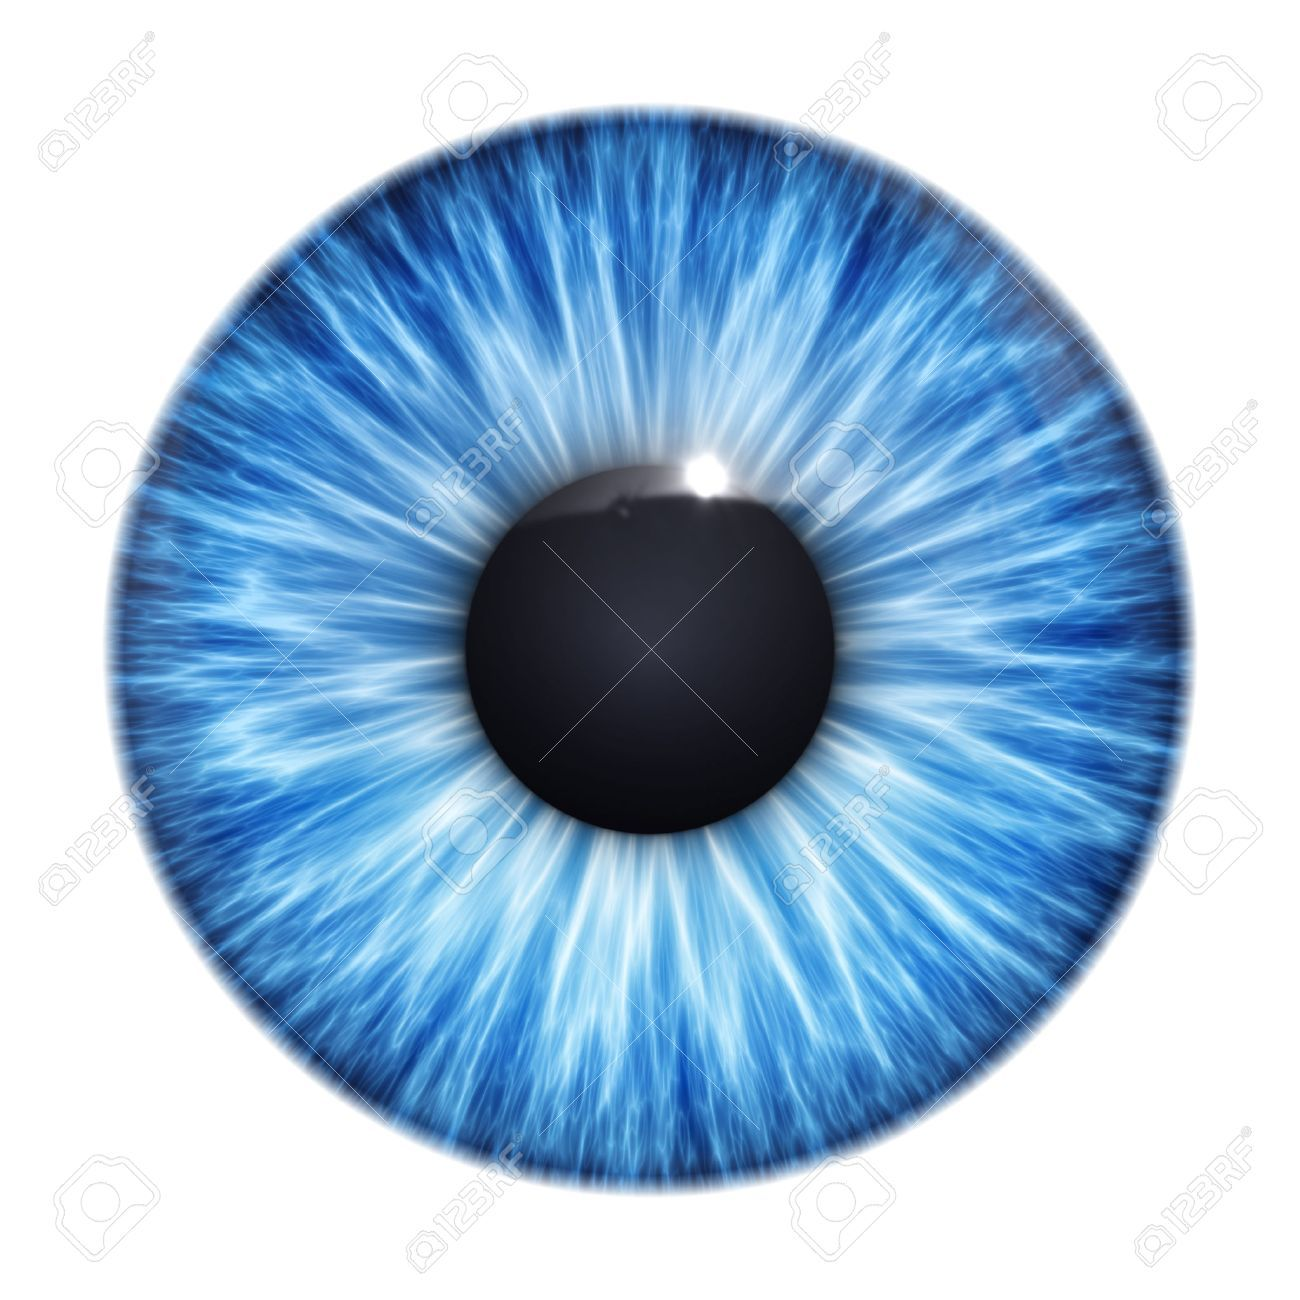 An Image Of A Nice Blue Eye Texture Stock Photo Aff Blue Nice Image Eye Photo Eye Texture Eye Drawing Blur Background Photography